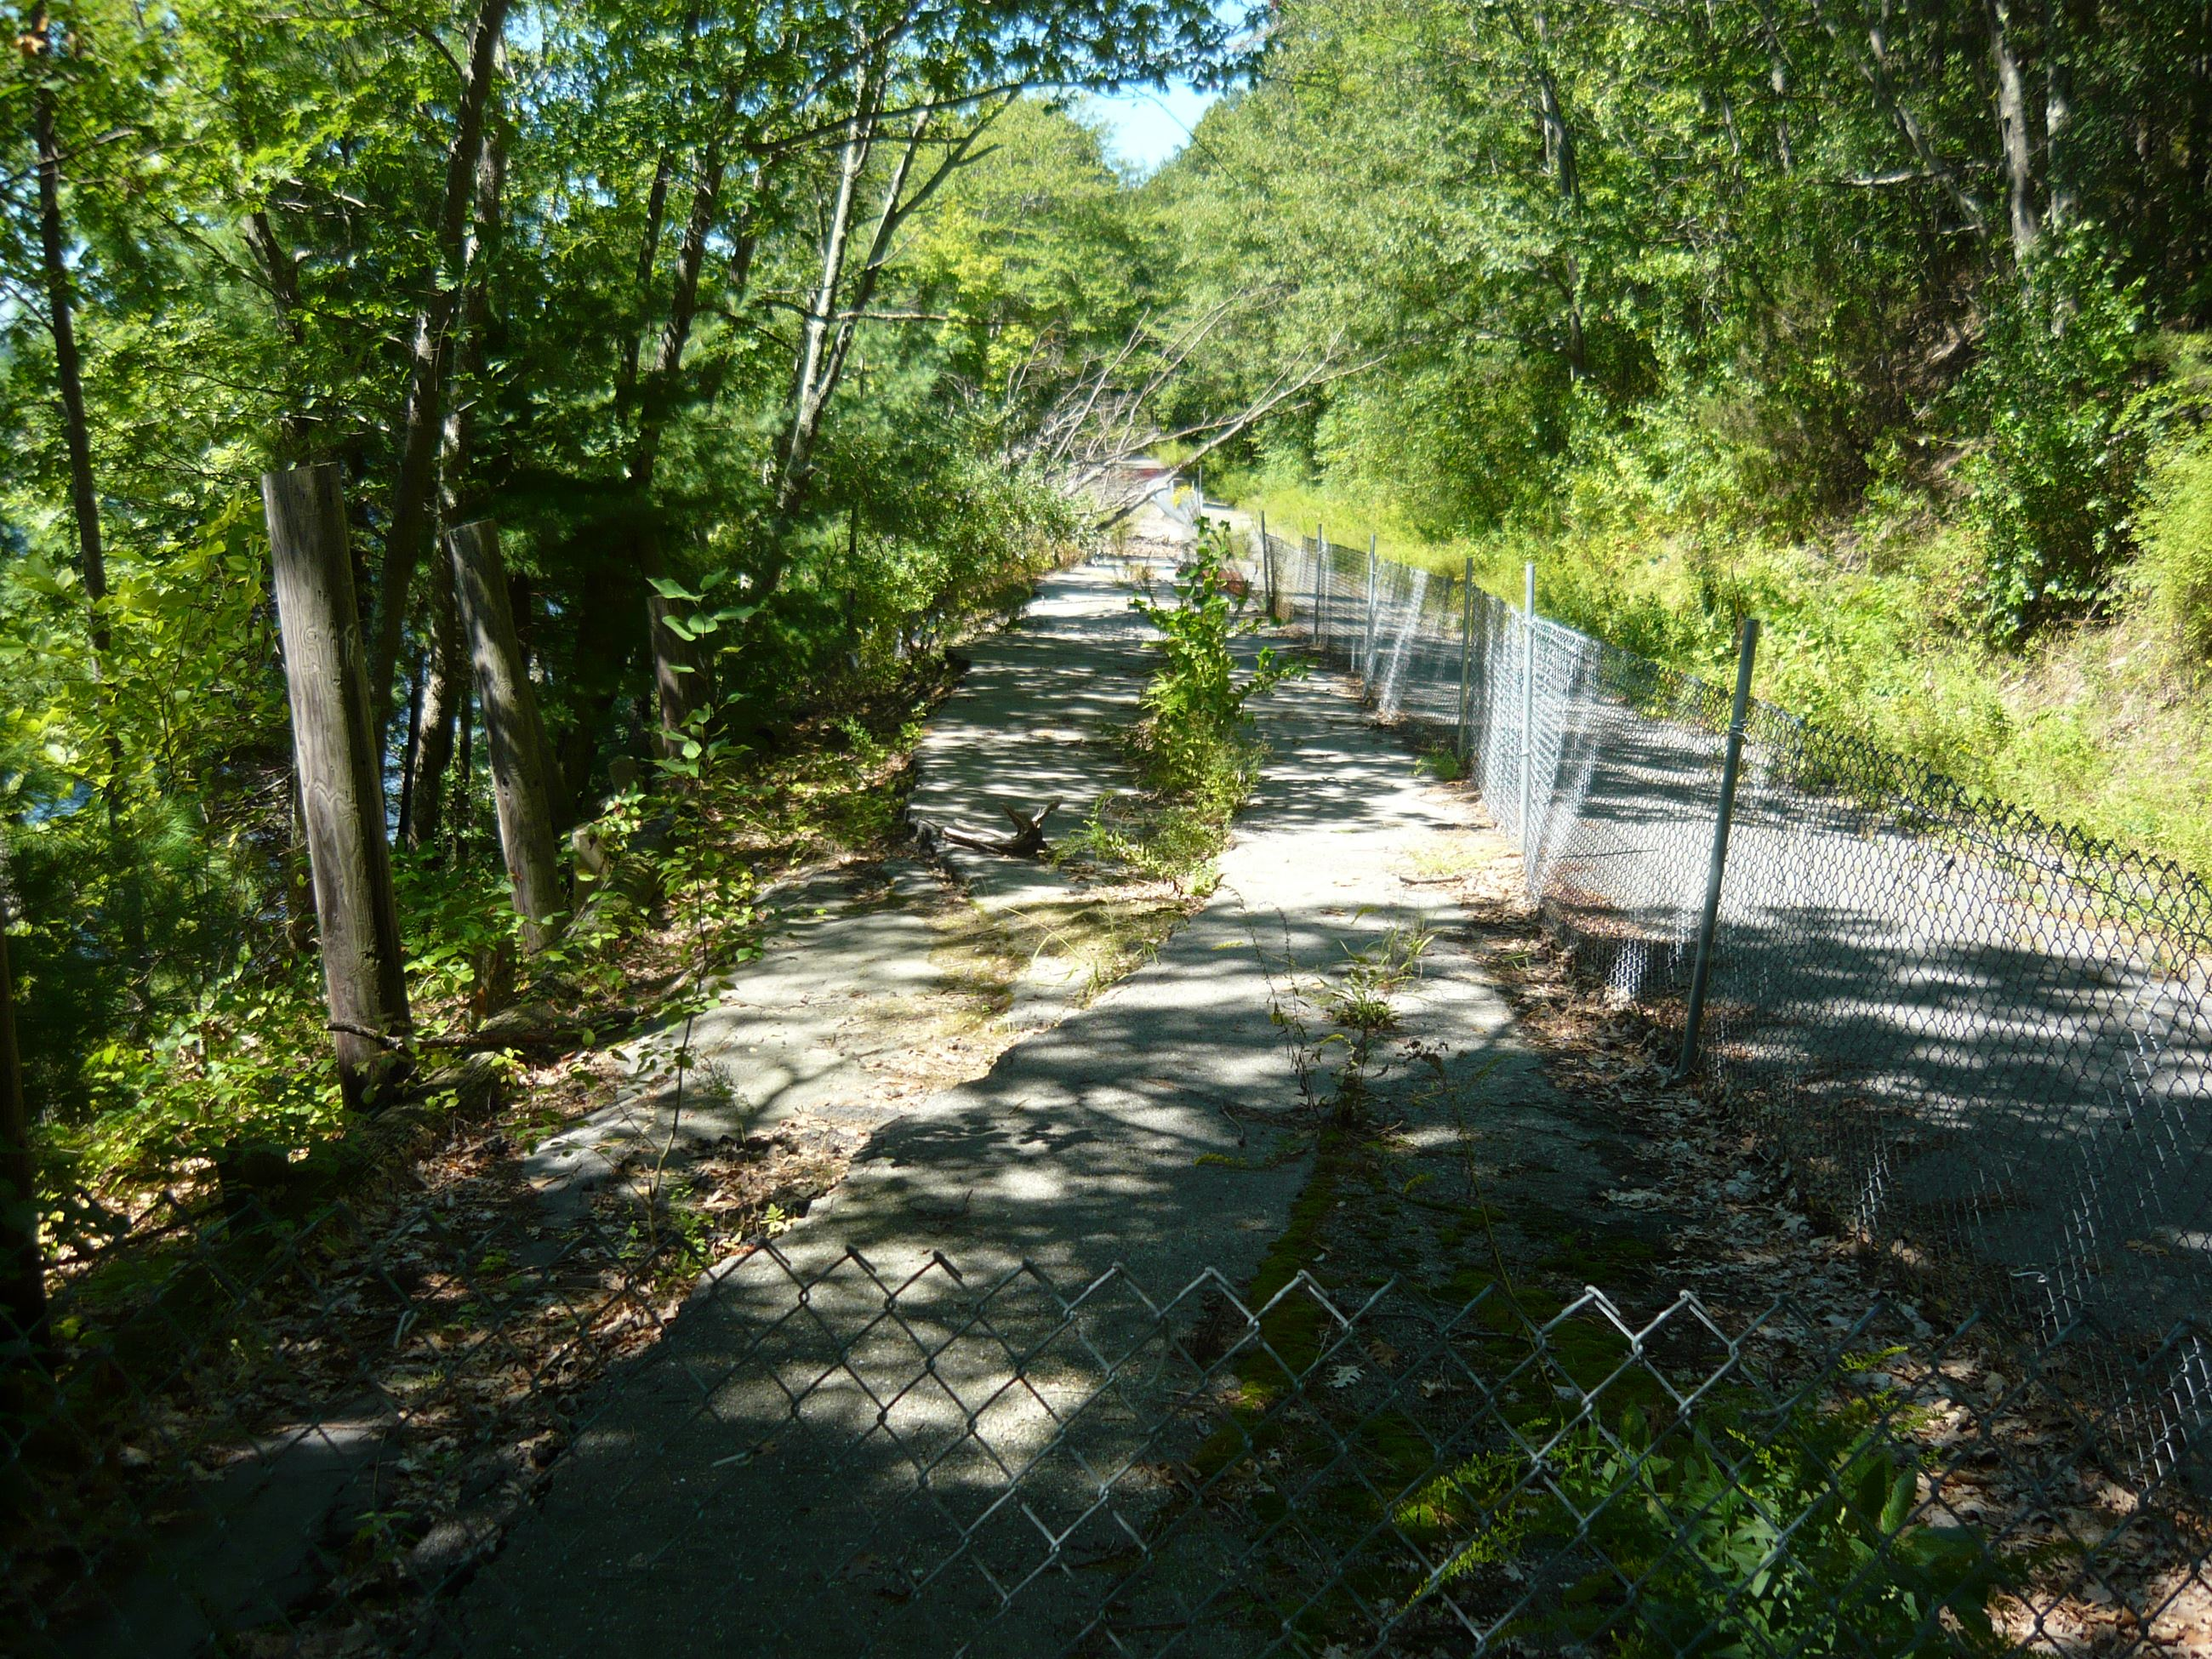 Broken Road with Fence Surrounding